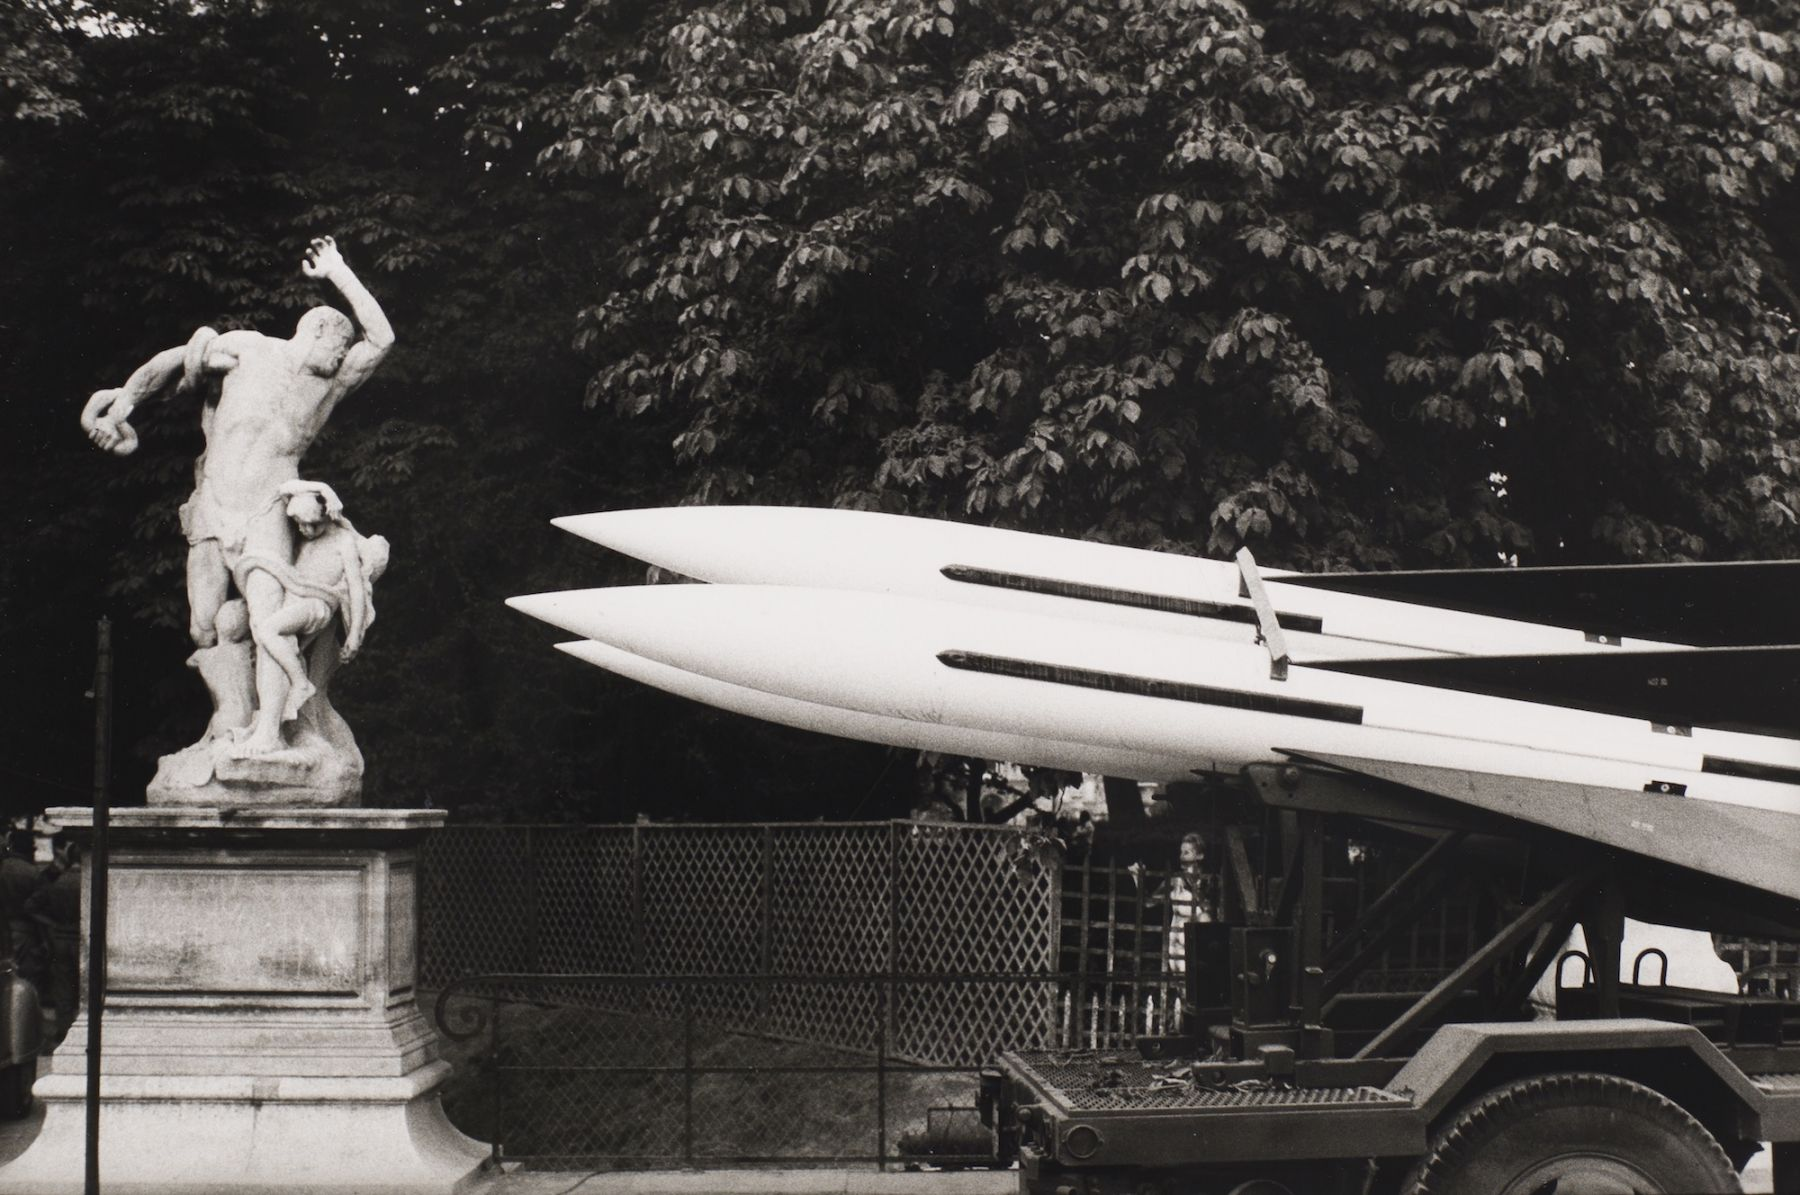 Philippe Salaun (1943-)  Jardin de Tuileries, 1976  Gelatin silver print  12 x 16 inches (paper), black and white photography